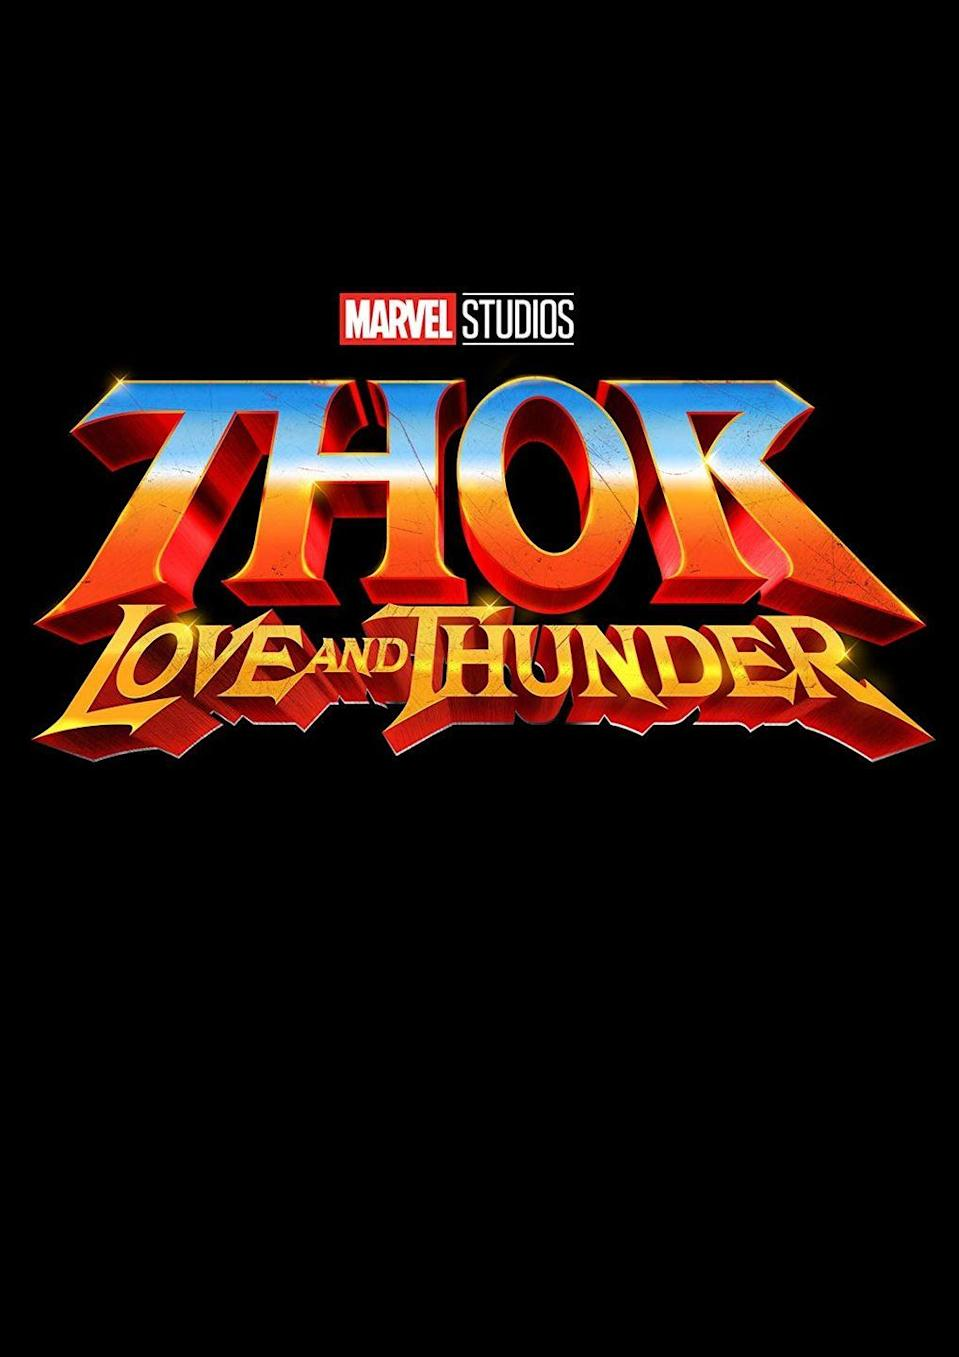 """<p>Marvel will kick off 2022 with a new Thor movie, directed by Ragnarok's Taika Waititi. Rumor has it, this time <a href=""""https://news.avclub.com/jane-foster-will-wield-the-hammer-as-the-female-thor-in-1836568851"""" rel=""""nofollow noopener"""" target=""""_blank"""" data-ylk=""""slk:Jane gets to pick up the hammer"""" class=""""link rapid-noclick-resp"""">Jane gets to pick up the hammer</a>! It hits theaters February 11, 2022. </p>"""